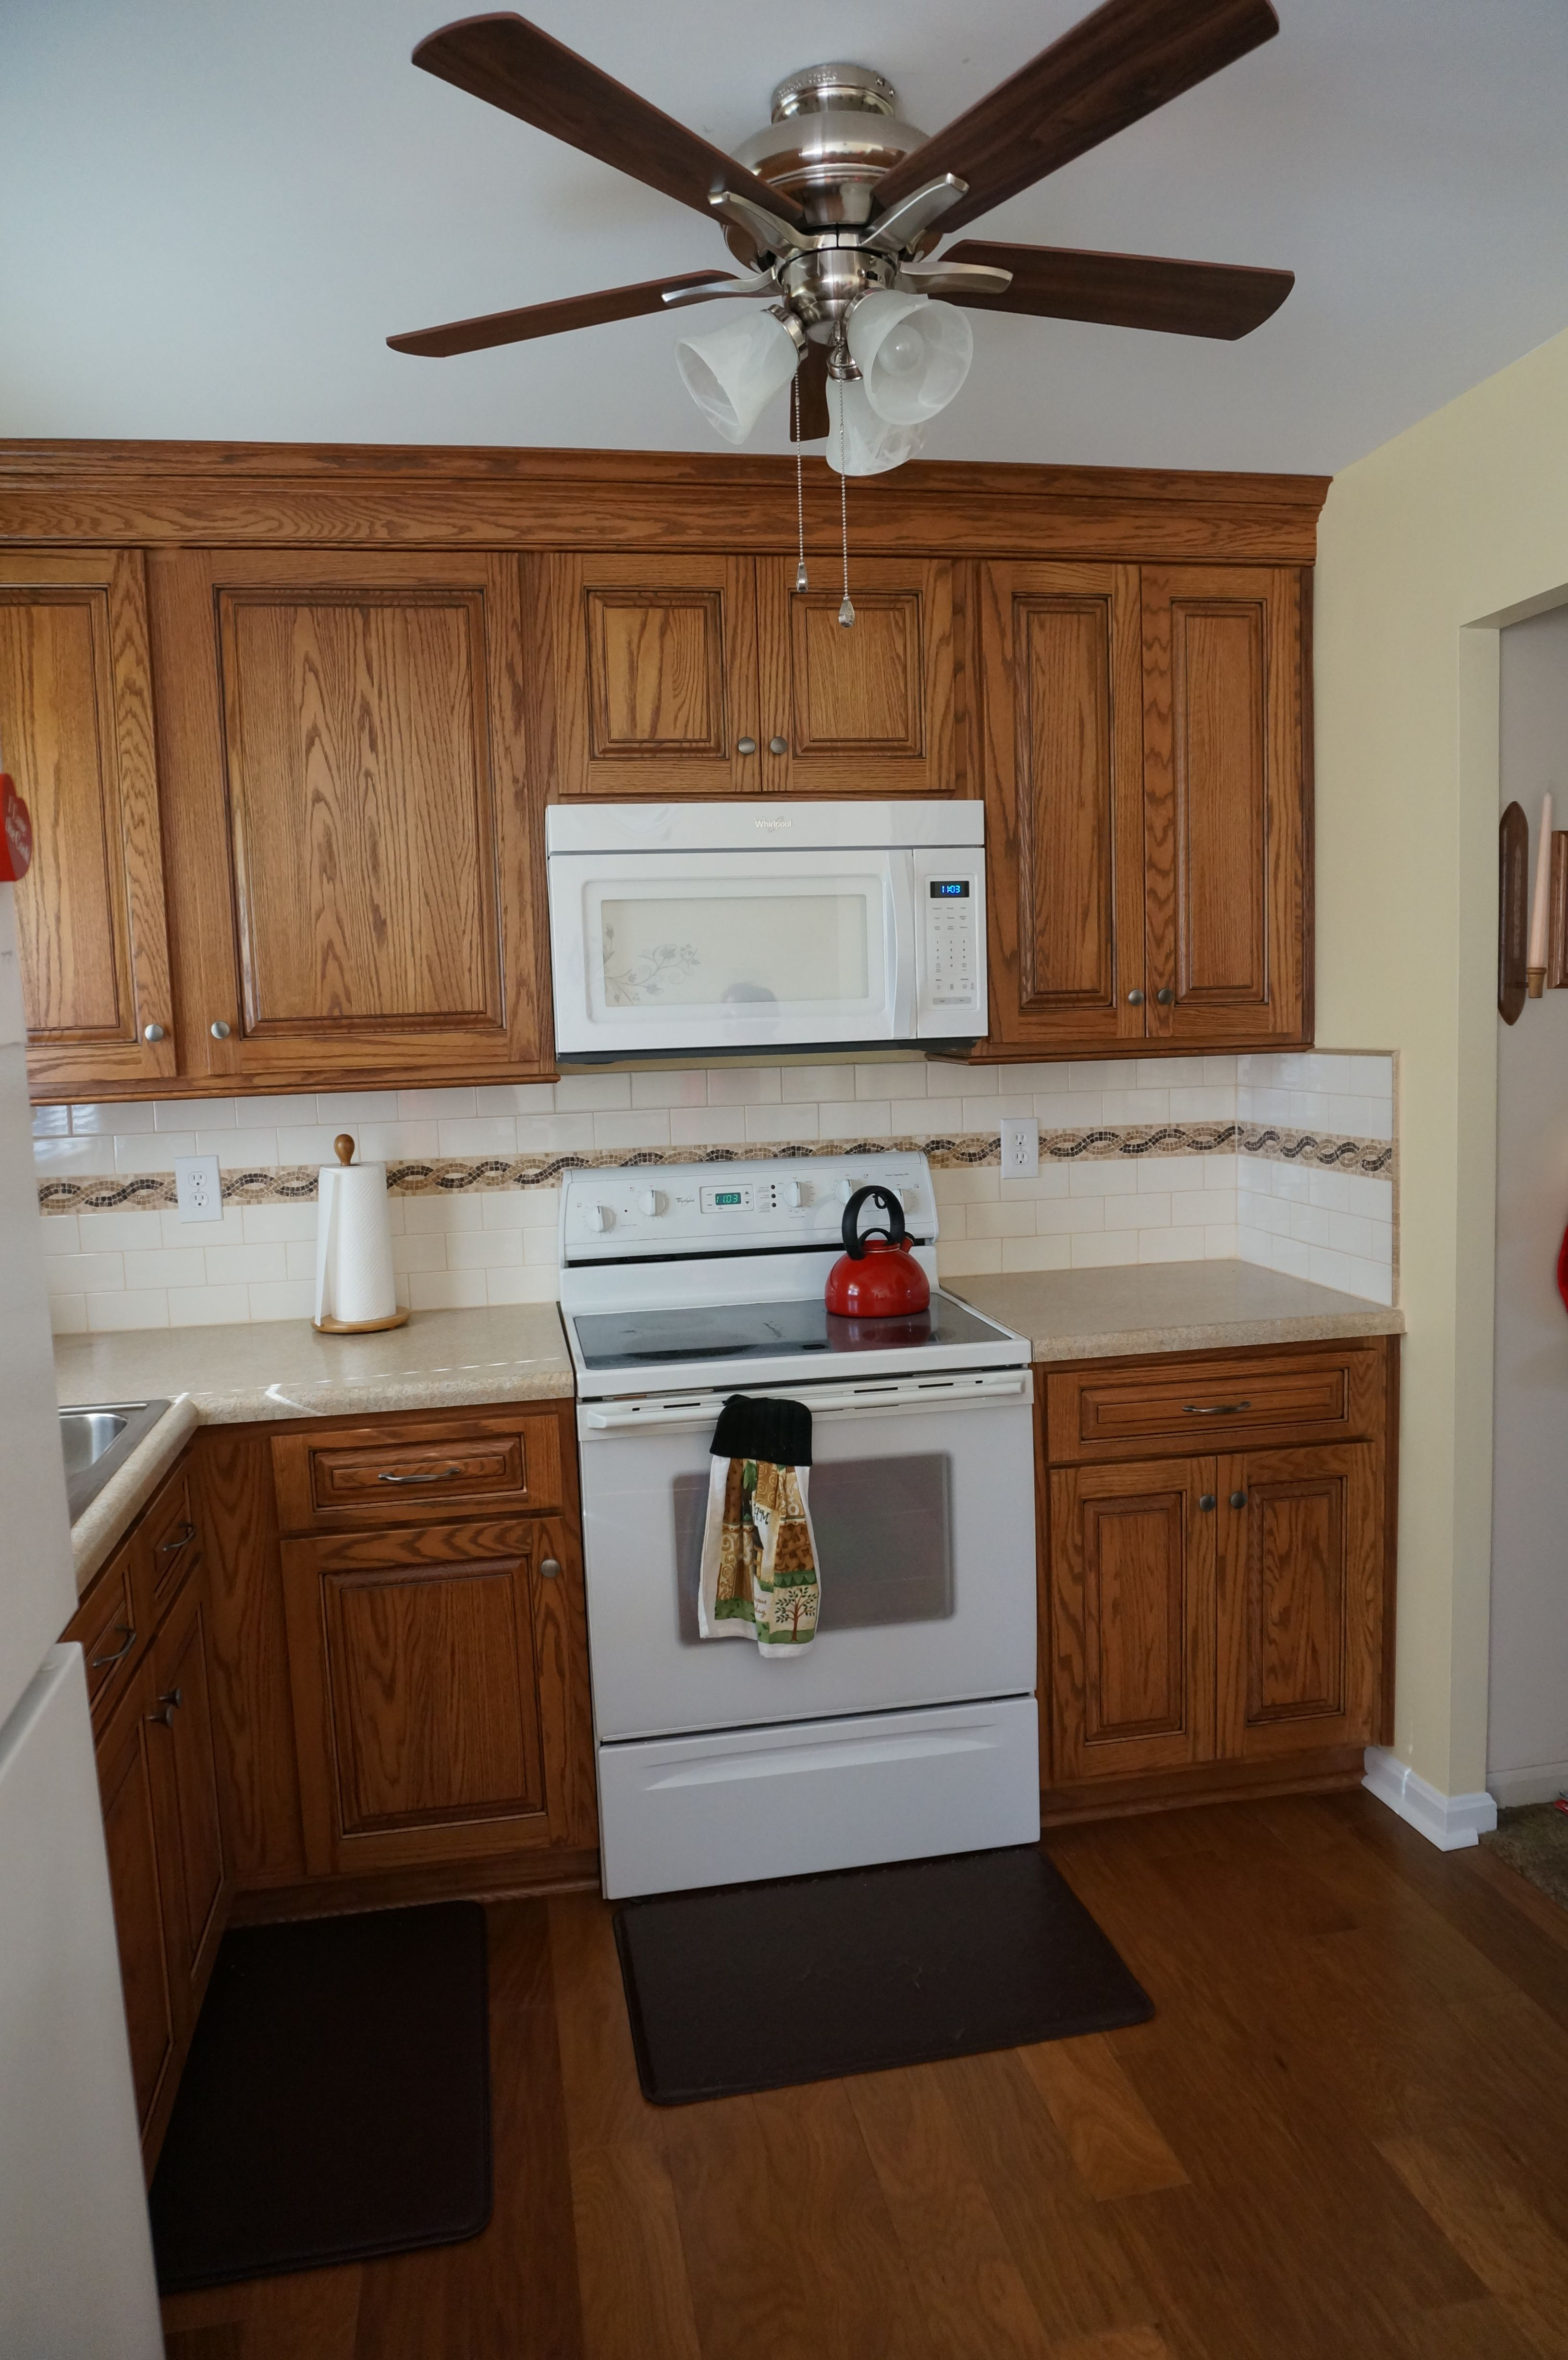 Best Aspect Cabinetry Oak Autumn Stain With Black Accent 400 x 300